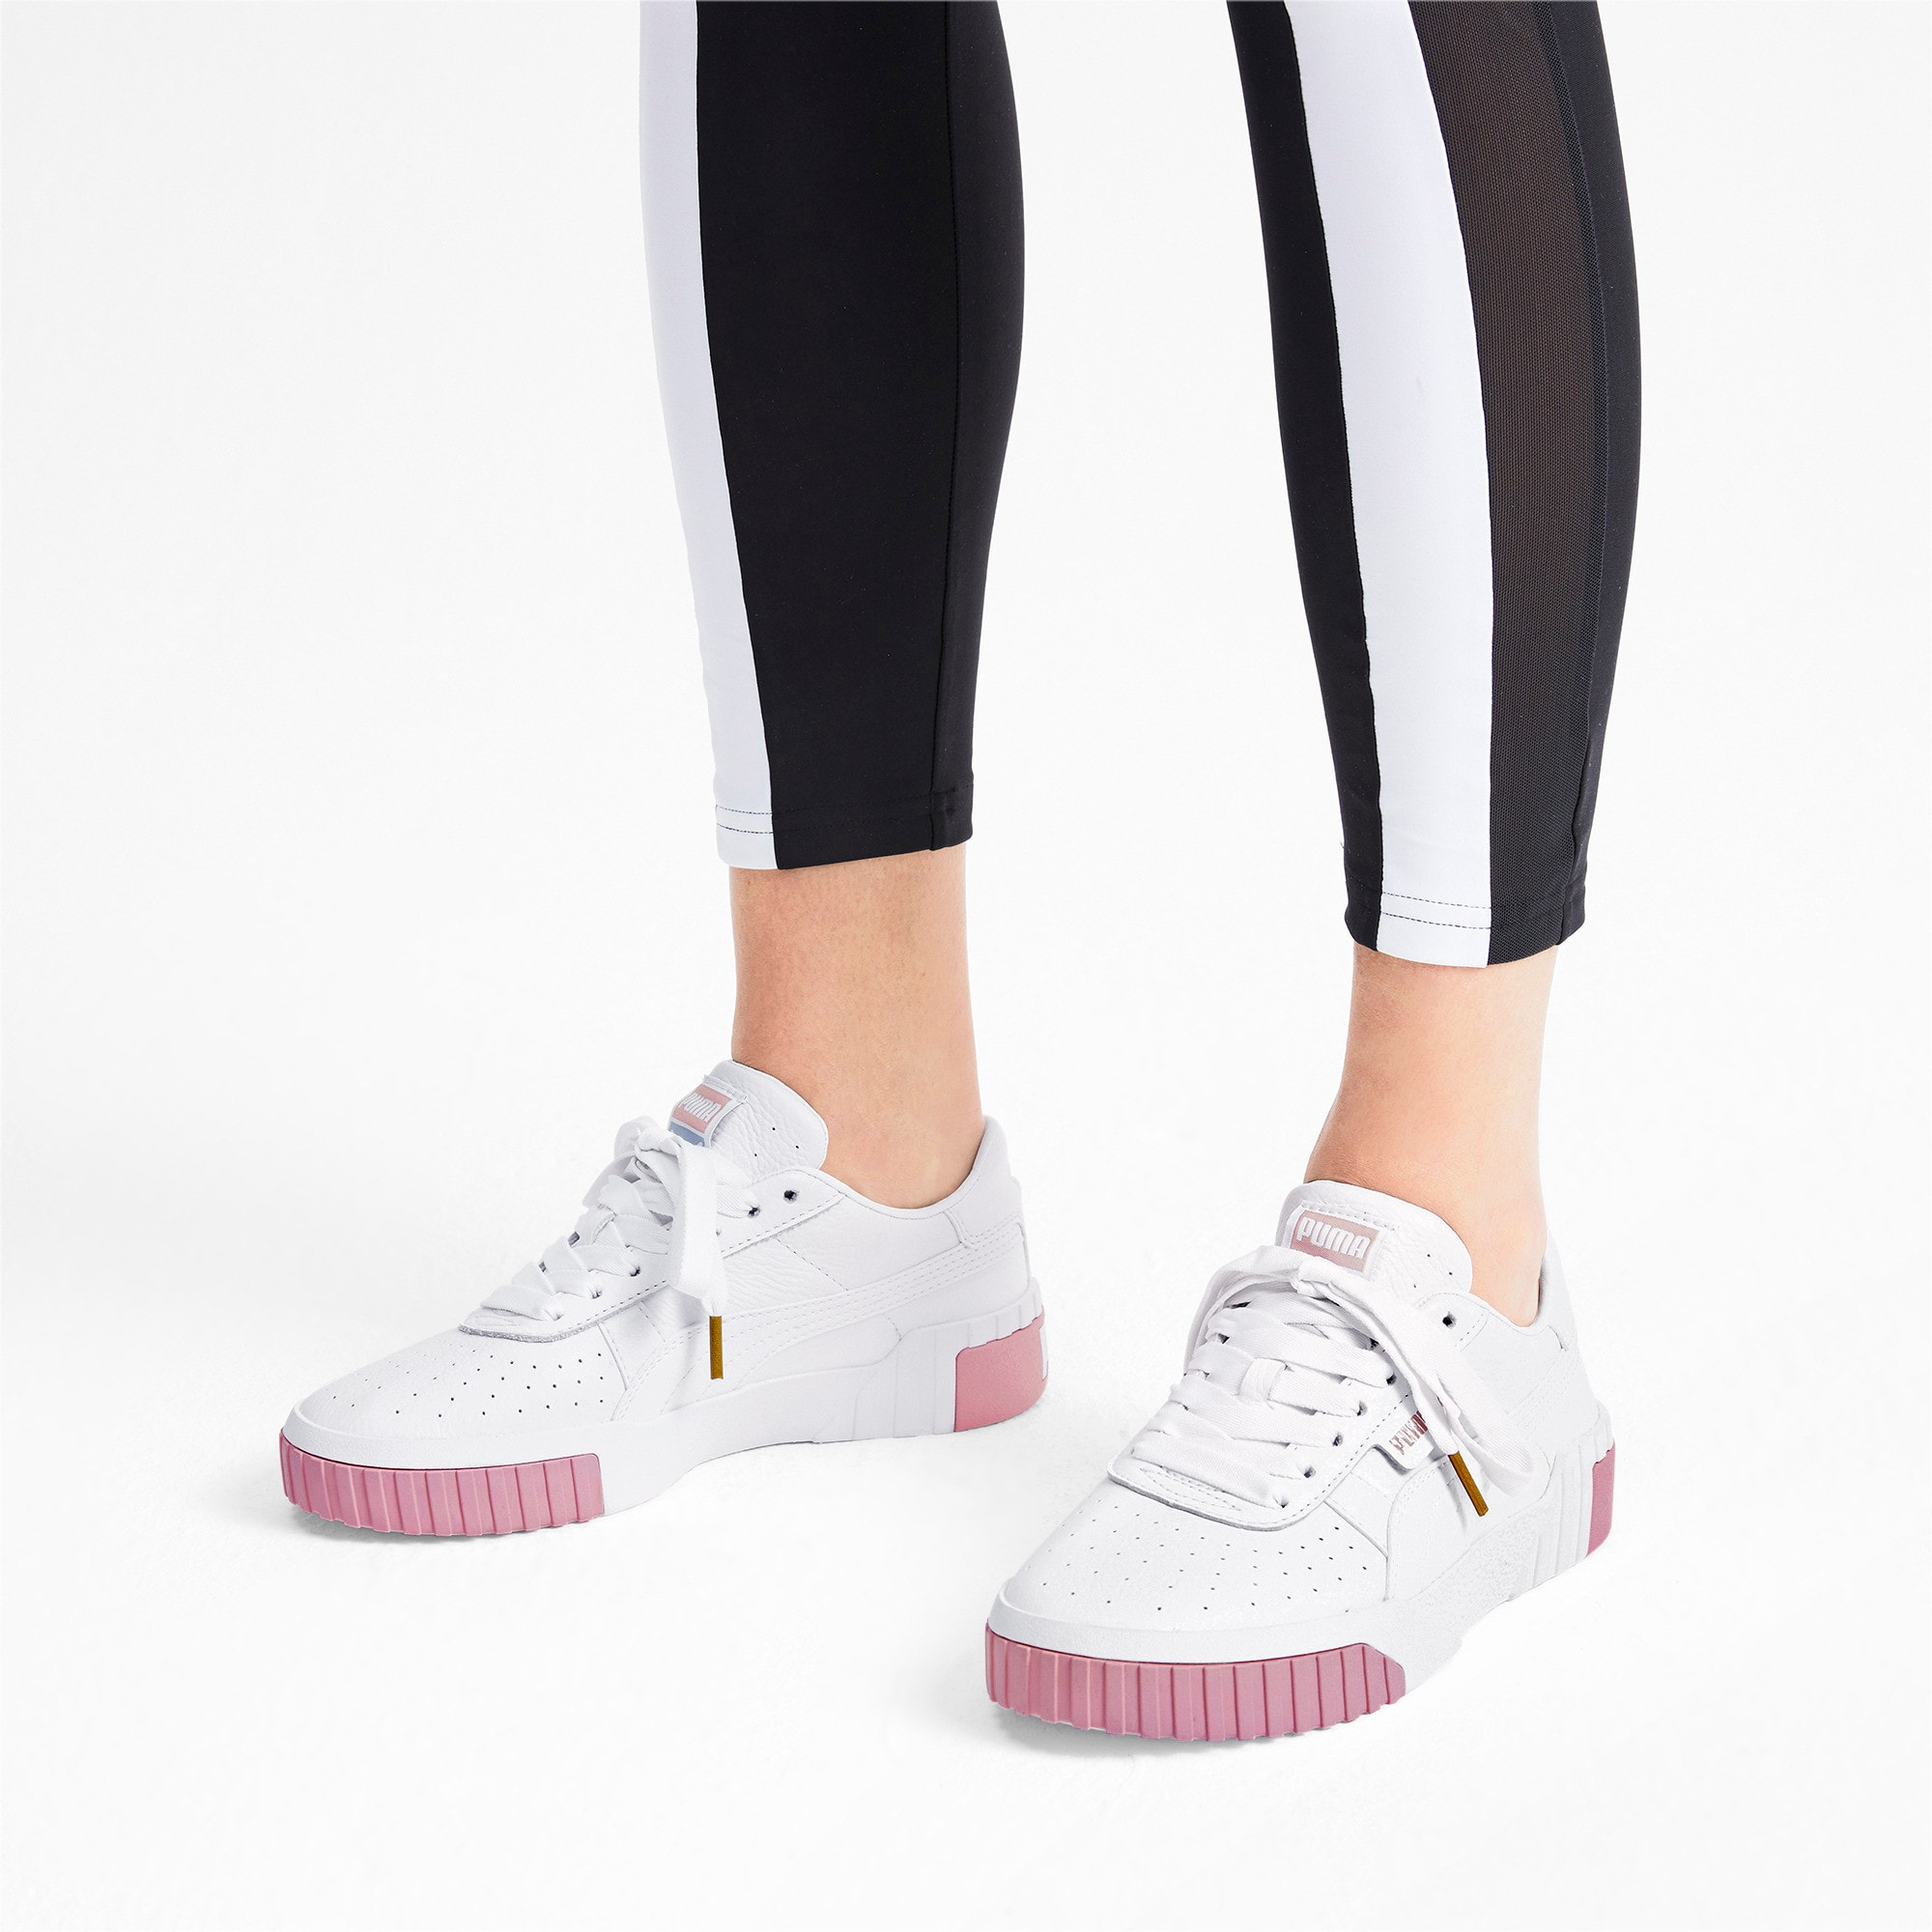 Thumbnail 2 of Cali Women's Trainers, Puma White-Rose Gold, medium-IND